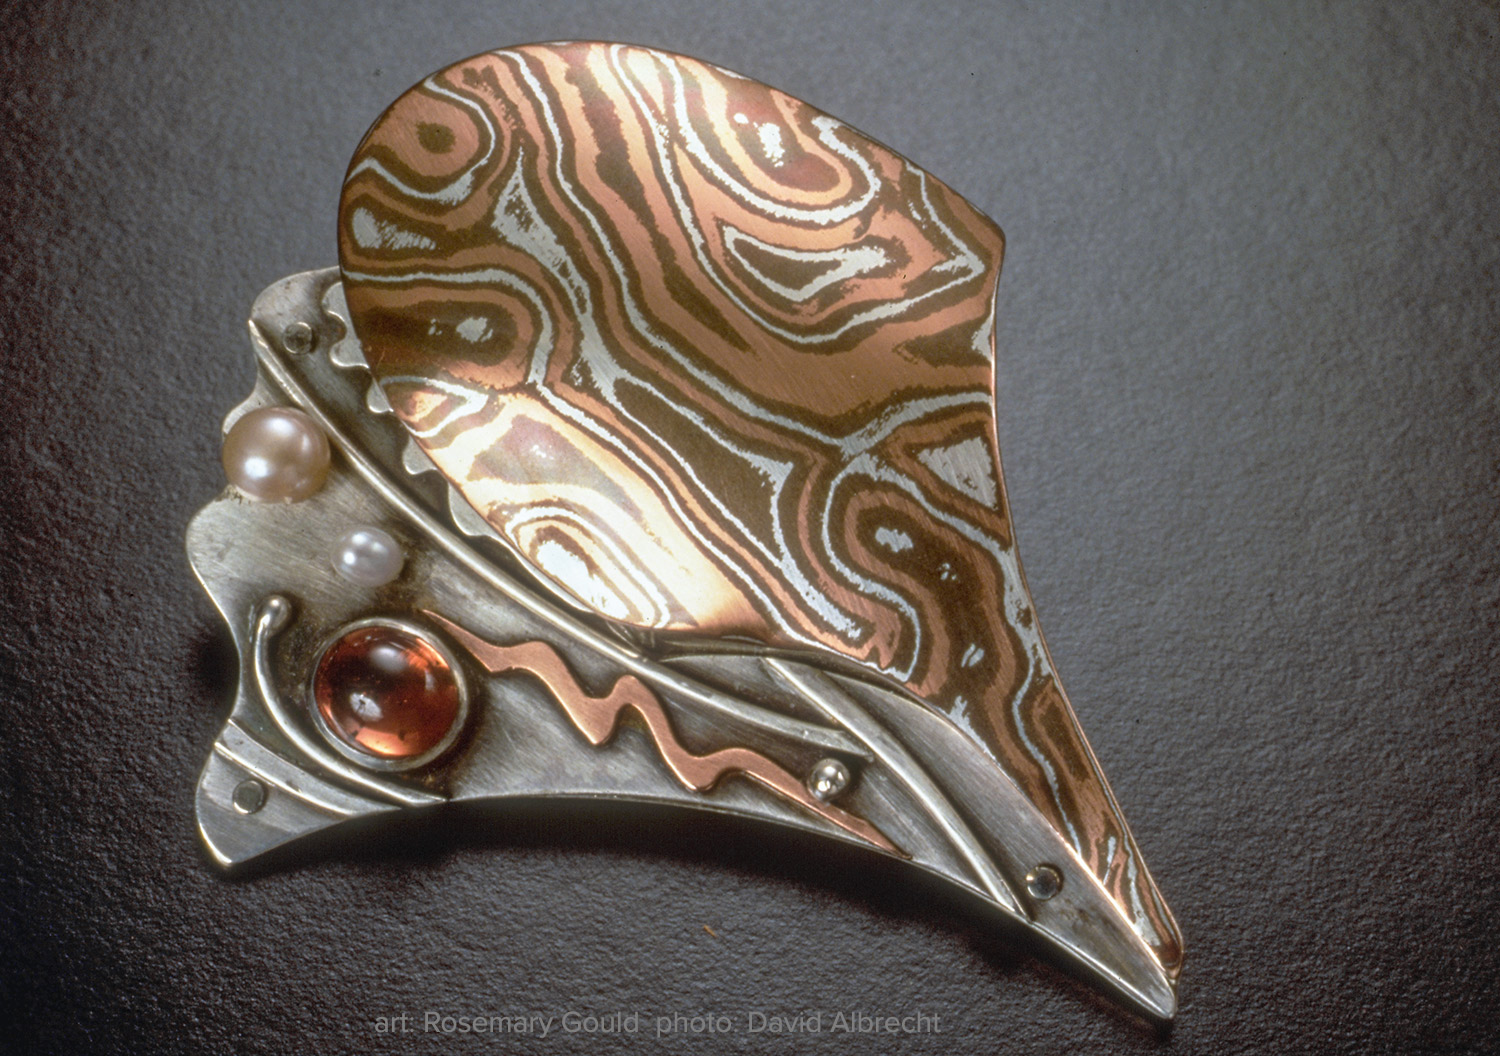 Shell Series Conch Brooch by Rosemary Gould. Shibuichi, copper, and fine silver with pearls and garnet. Photo: David Albrecht